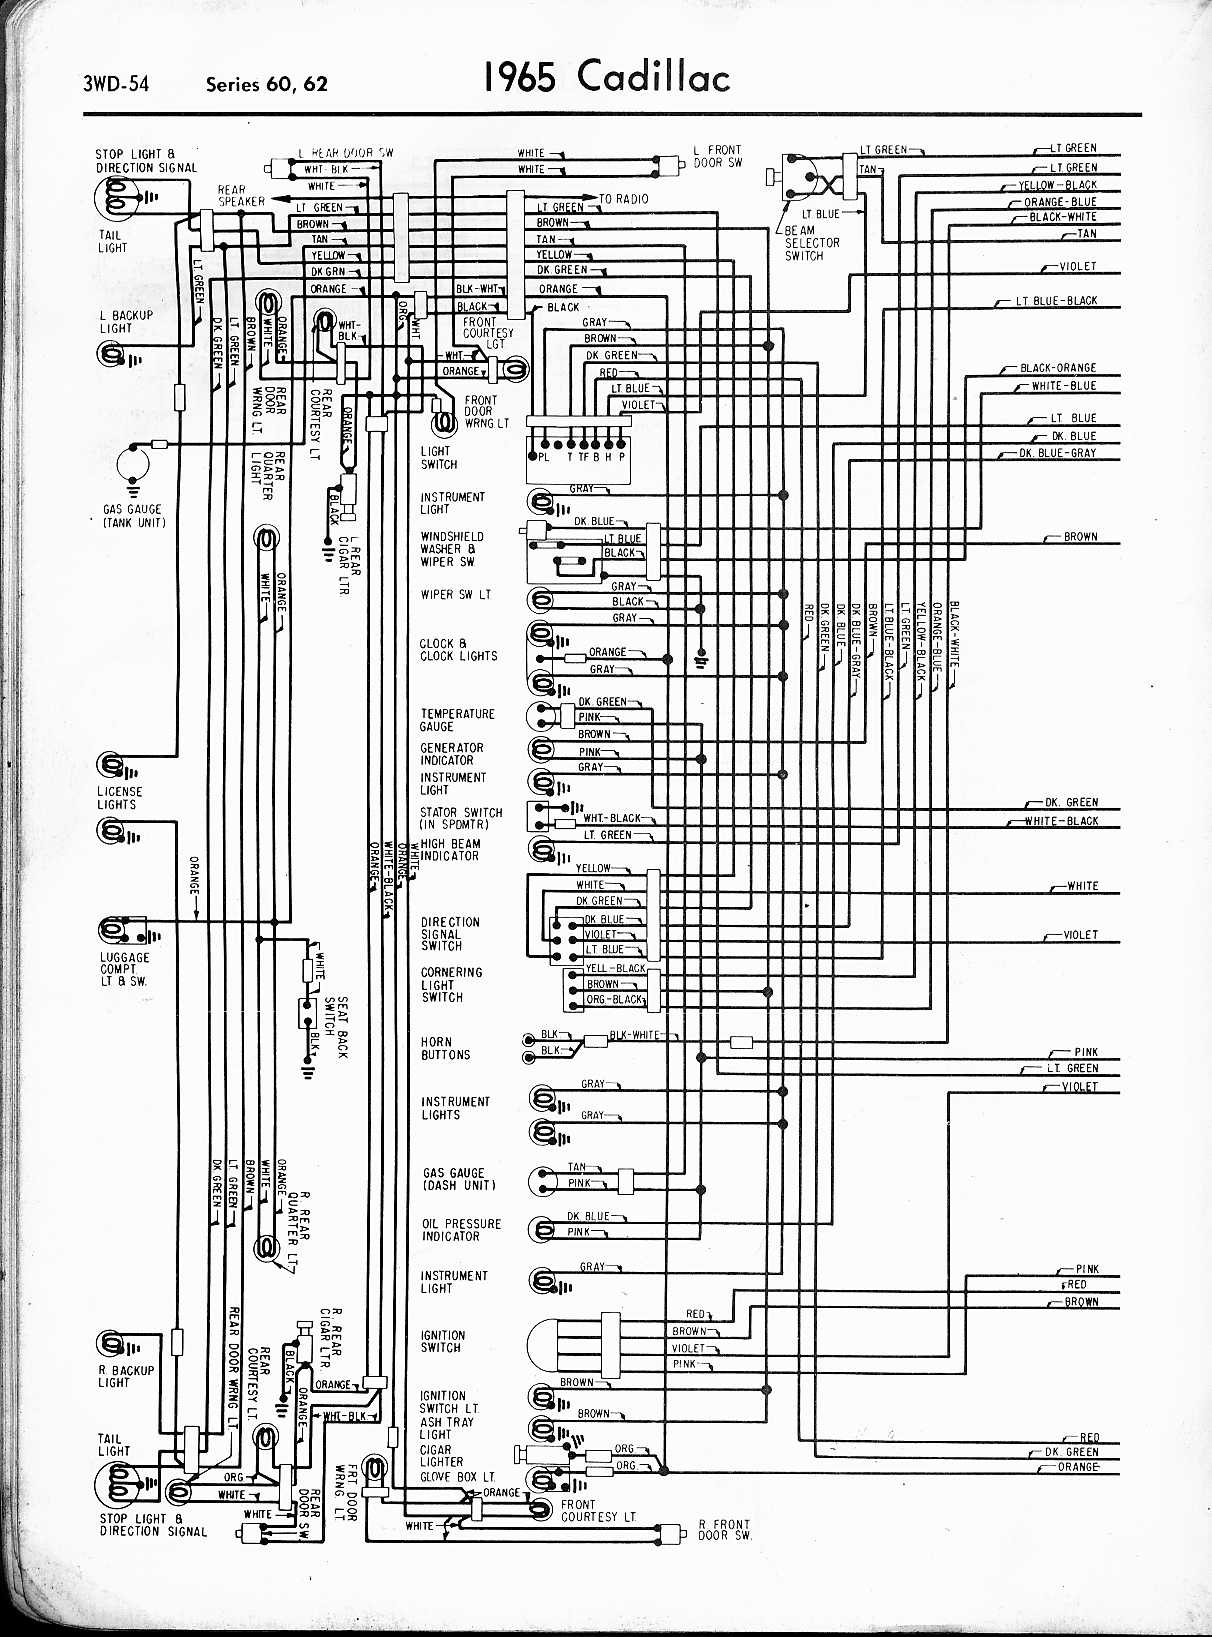 cadillac wiring diagrams 1957 1965 2012 Cadillac Wiring Schematics 1965 series 60,62 left